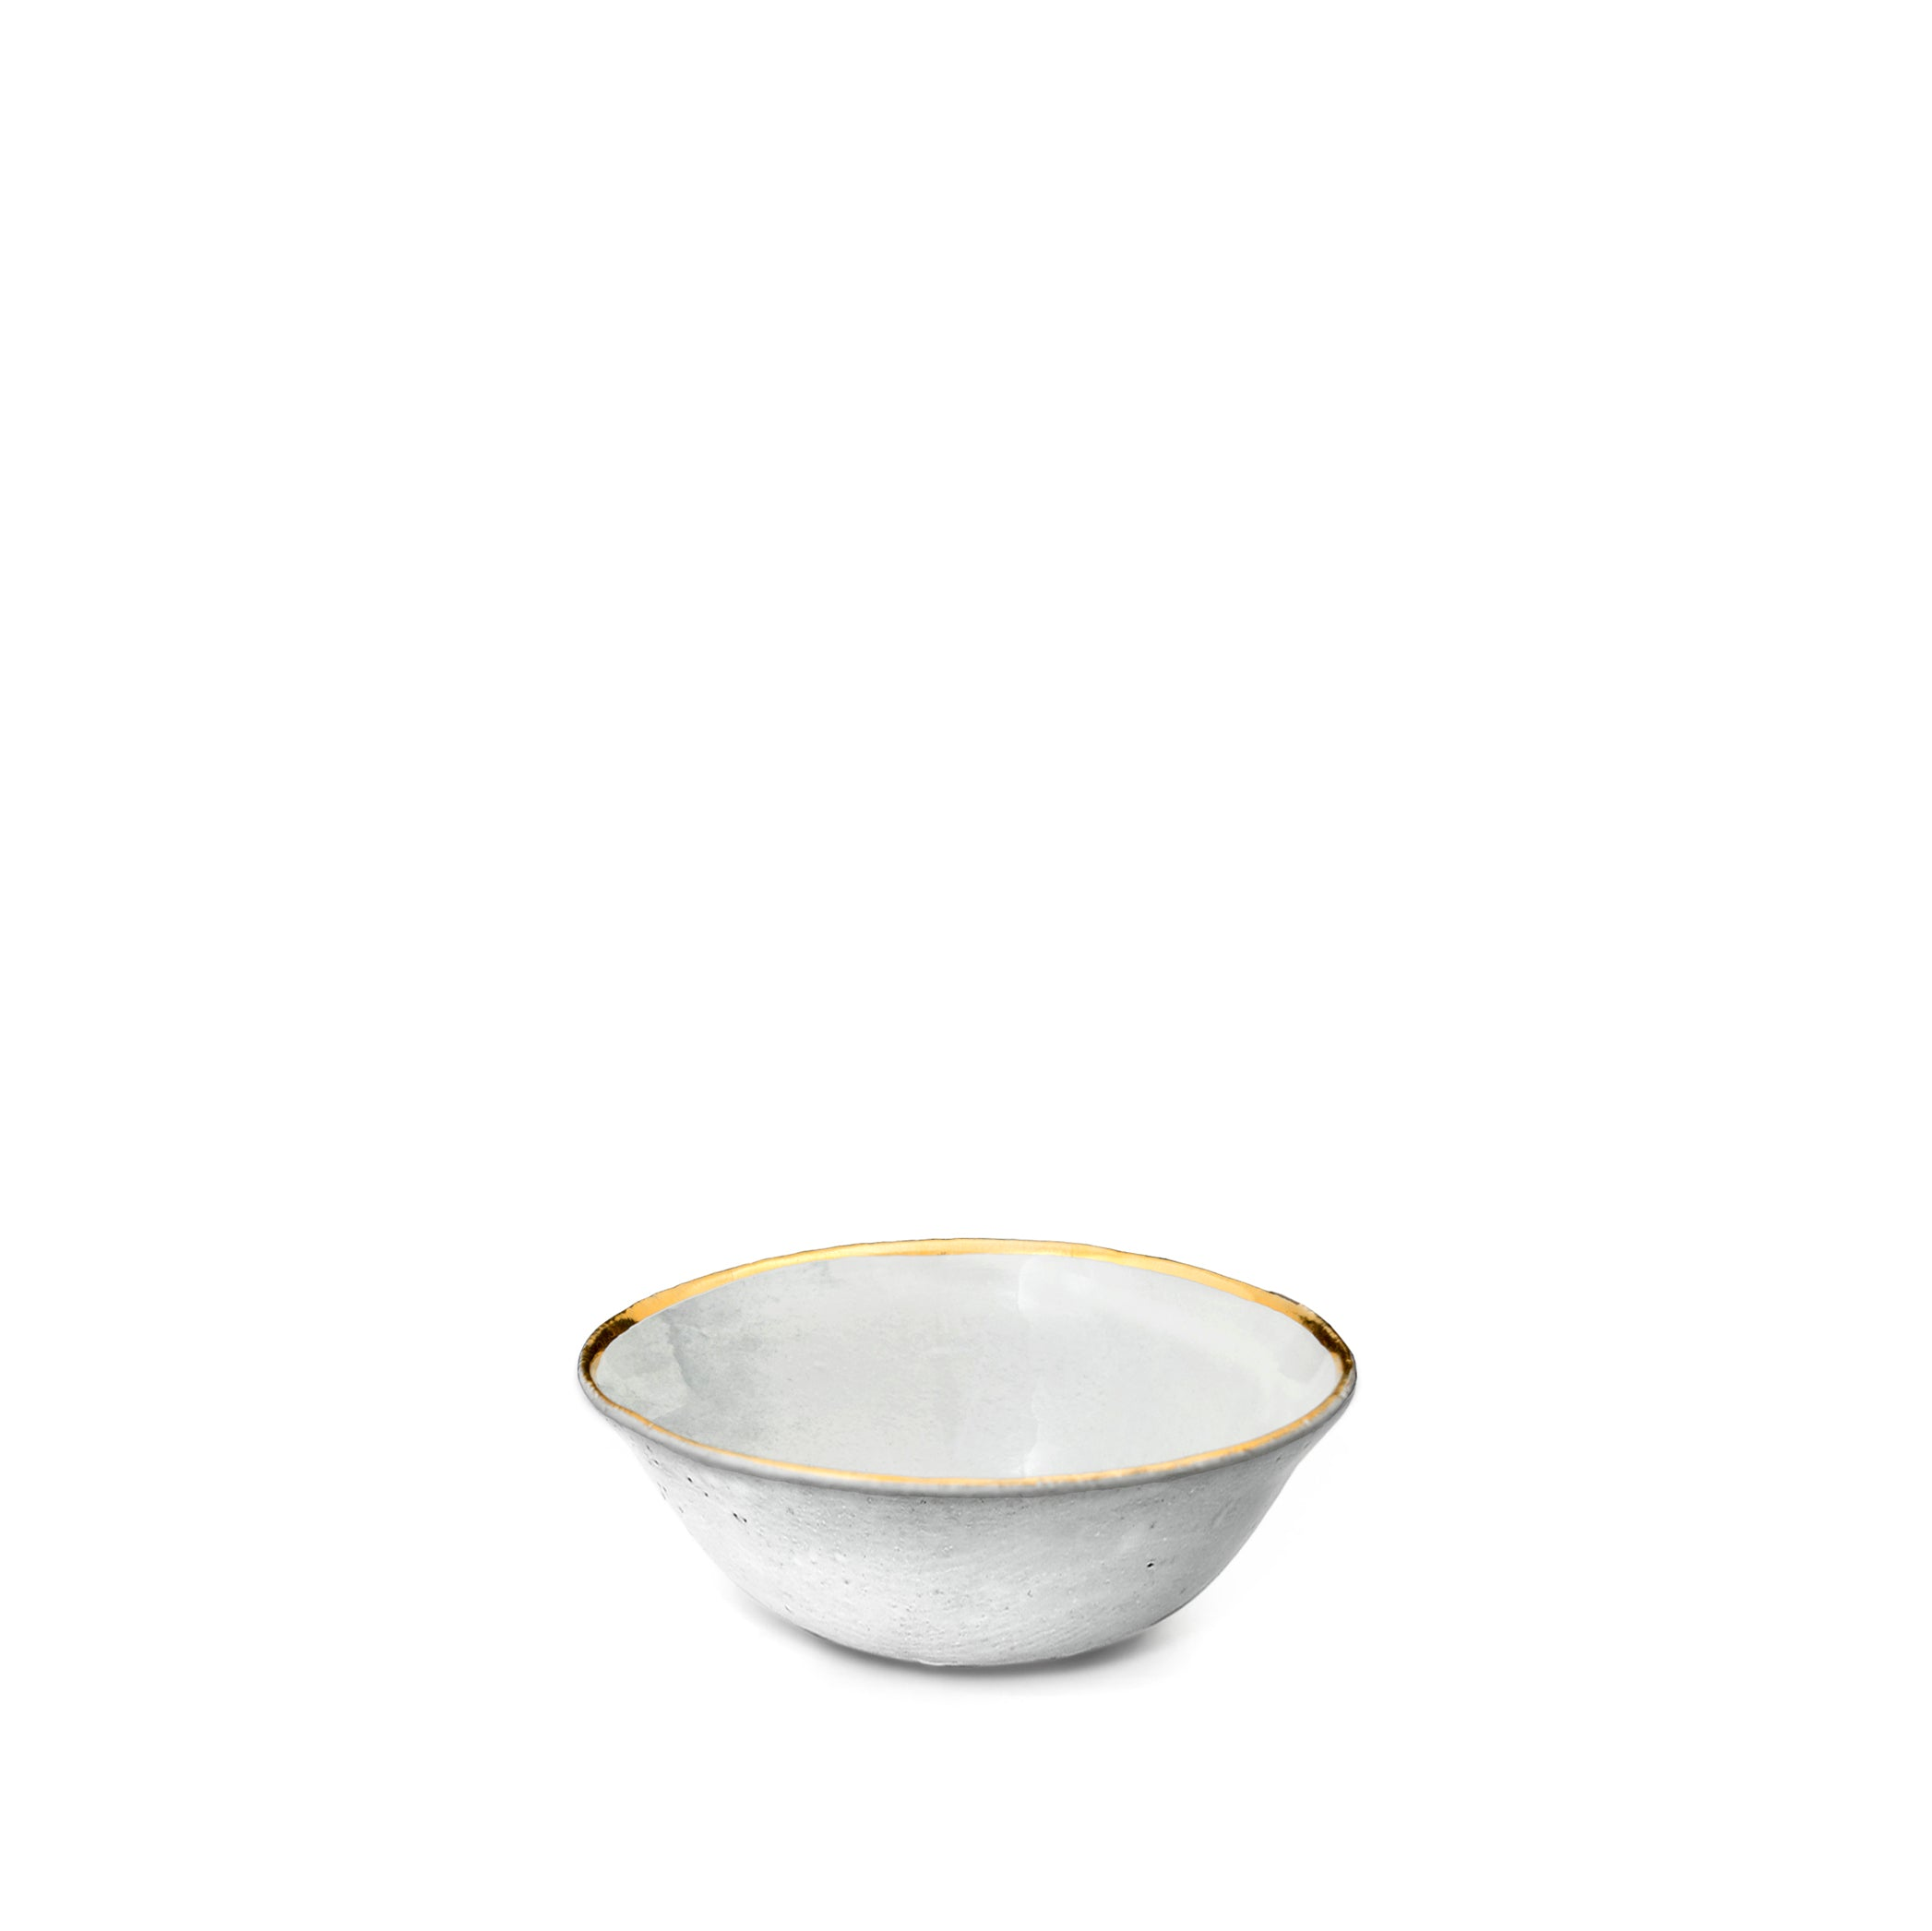 Crésus Soup Bowl with Gold Rim by Astier de Villatte